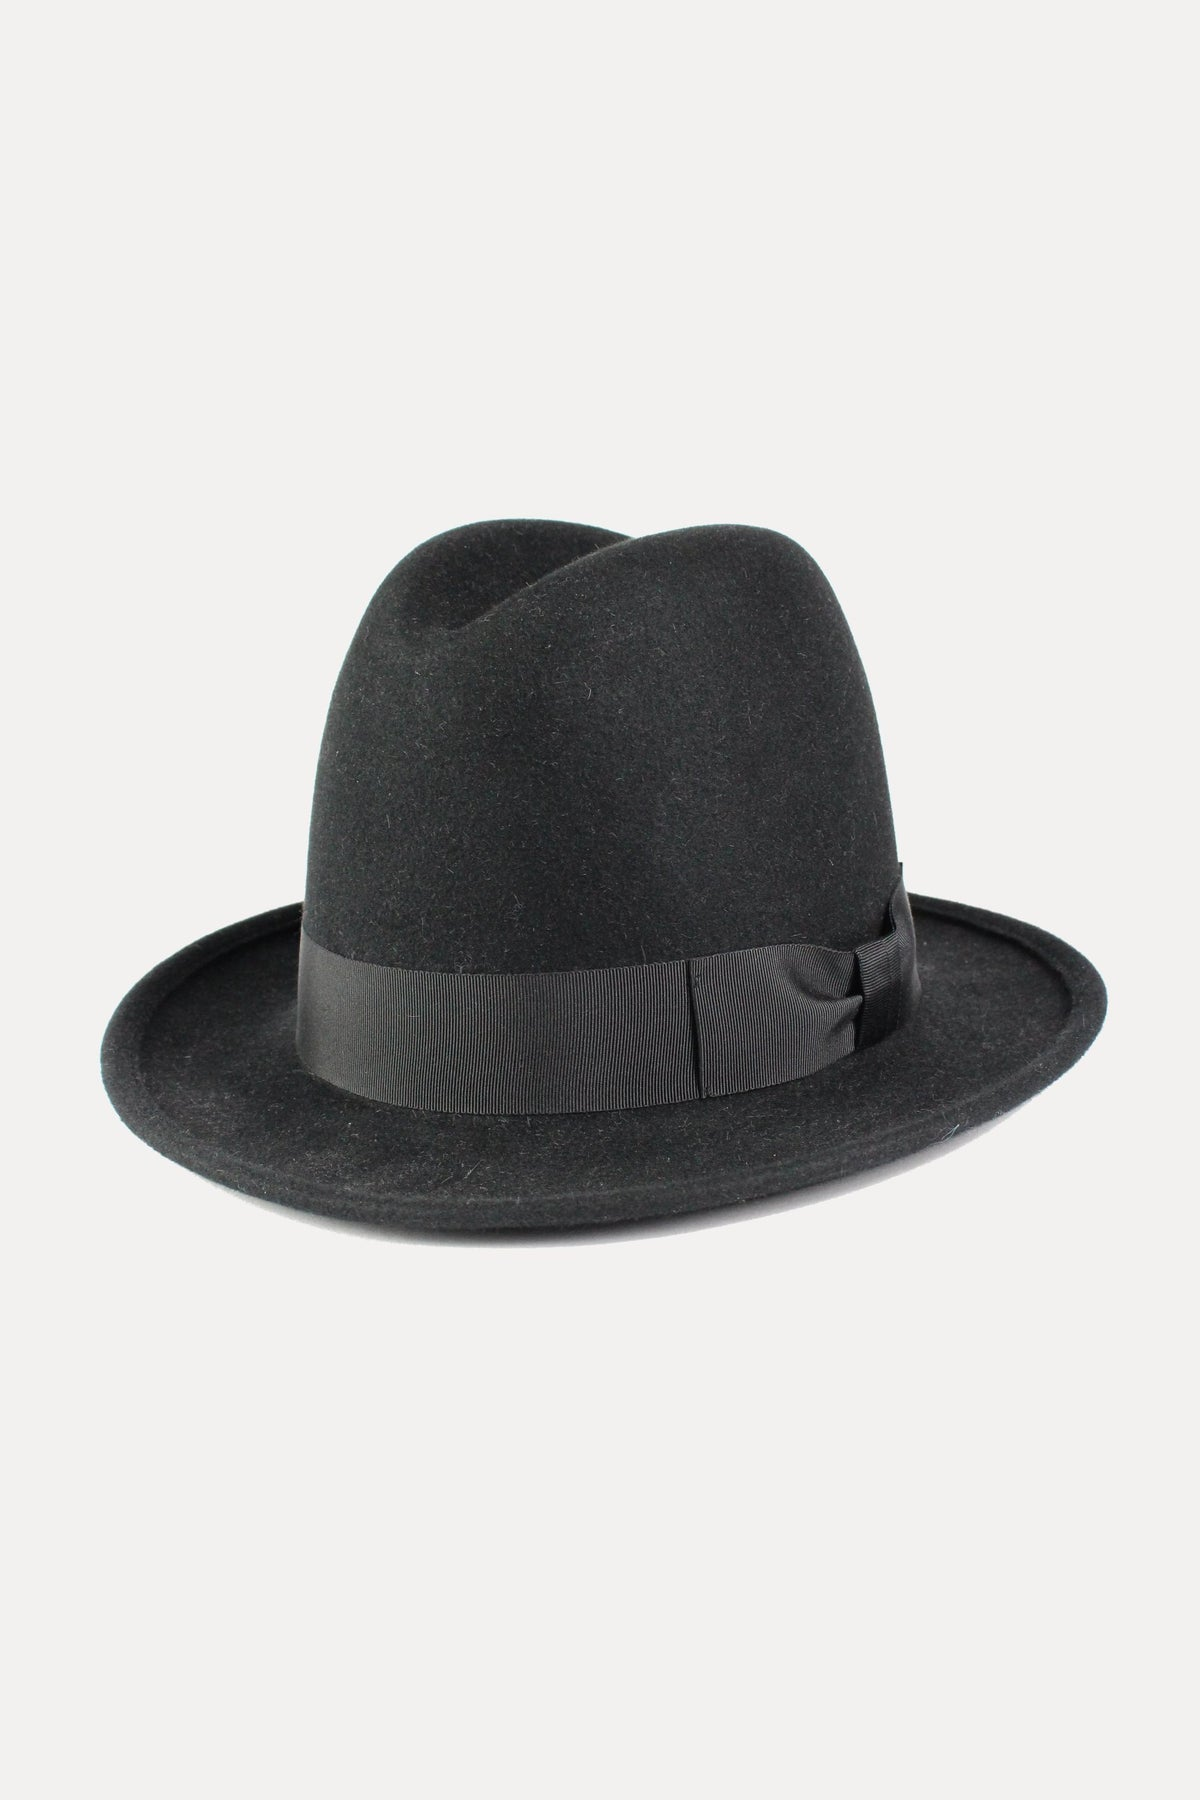 HOMBURG - OBSIDIAN-hats-A Child Of The Jago